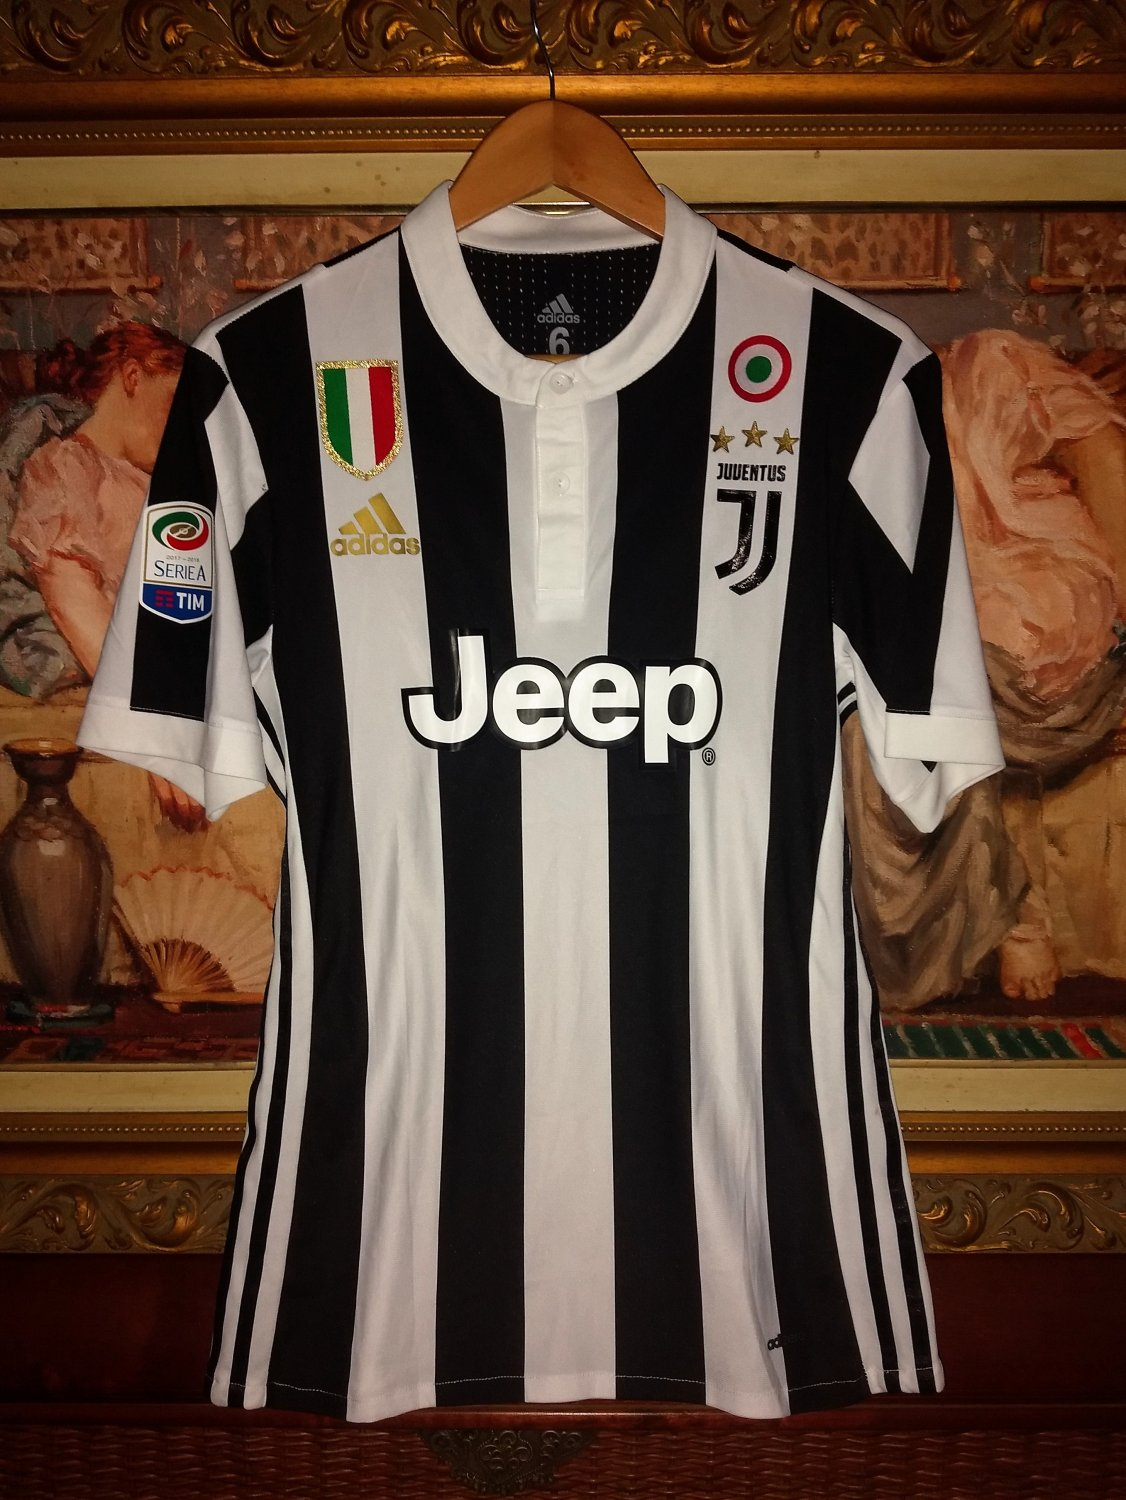 1f7e462ce64 Juventus Home maglia di calcio 2017 - 2018. Sponsored by Jeep